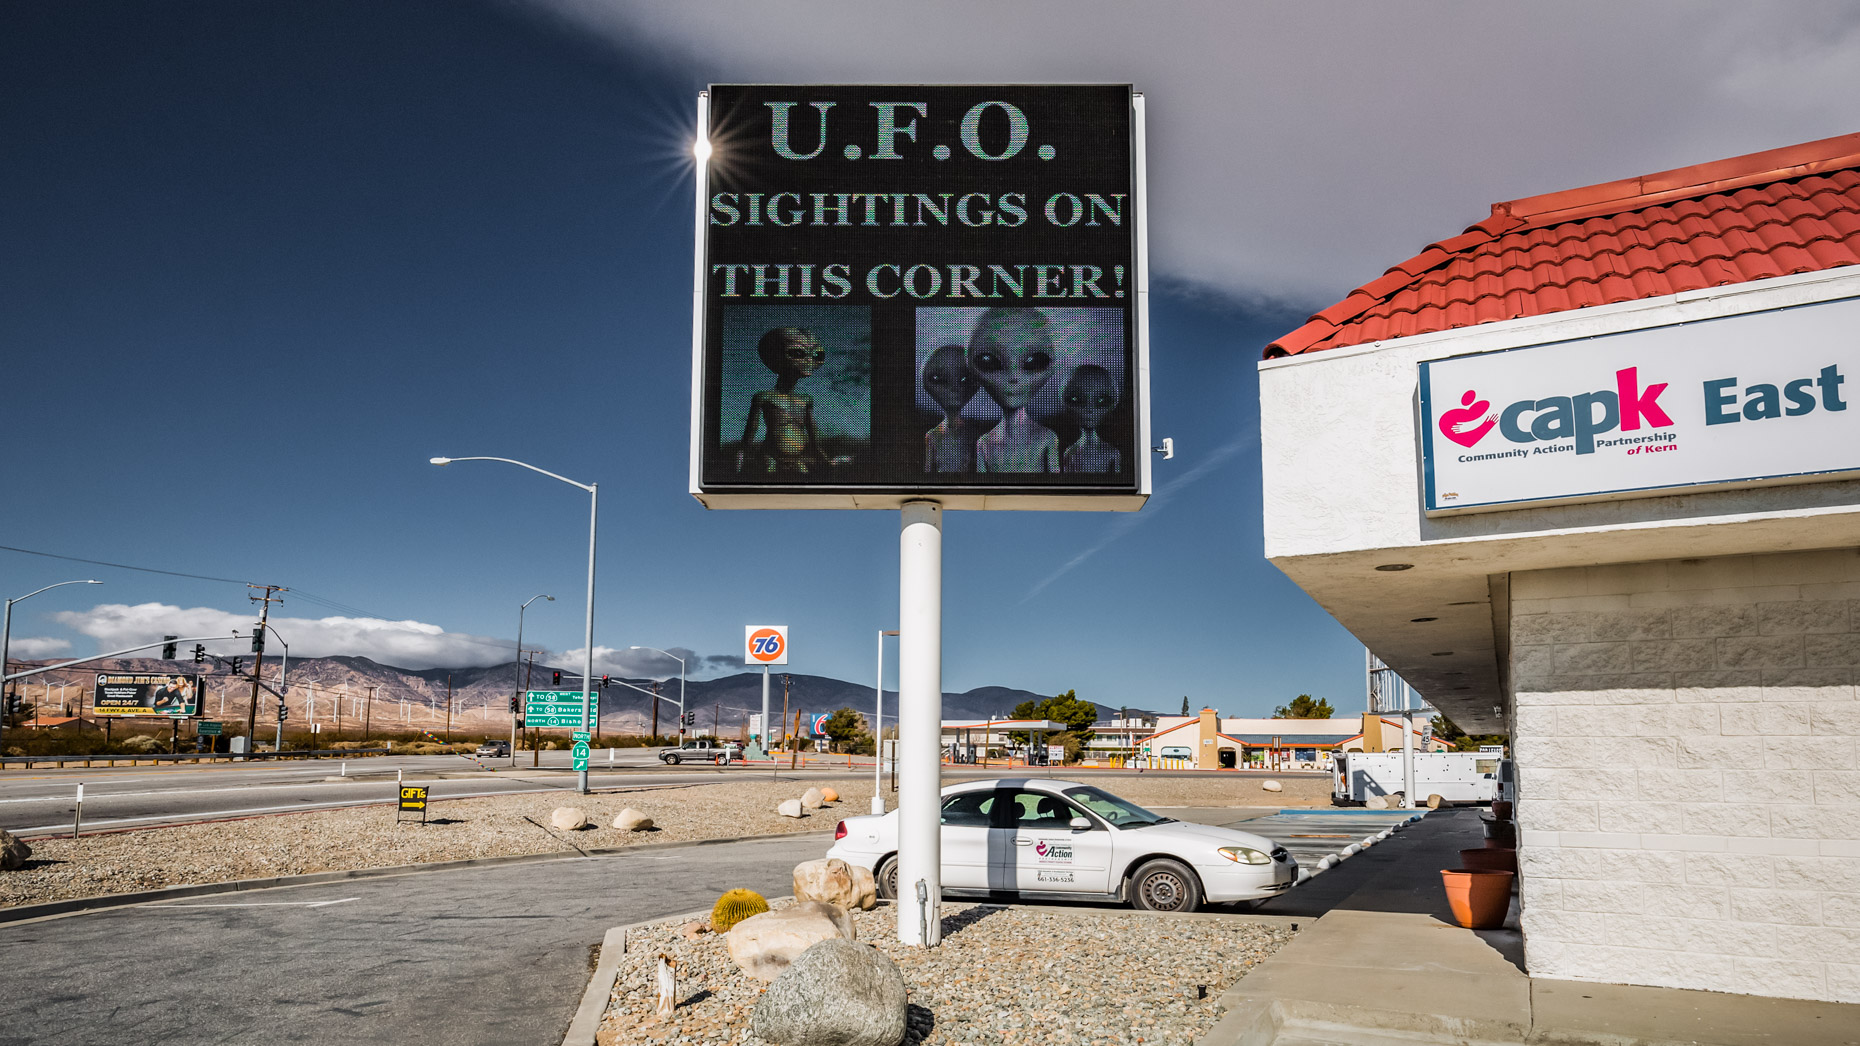 UFO Sightings On This Corner!